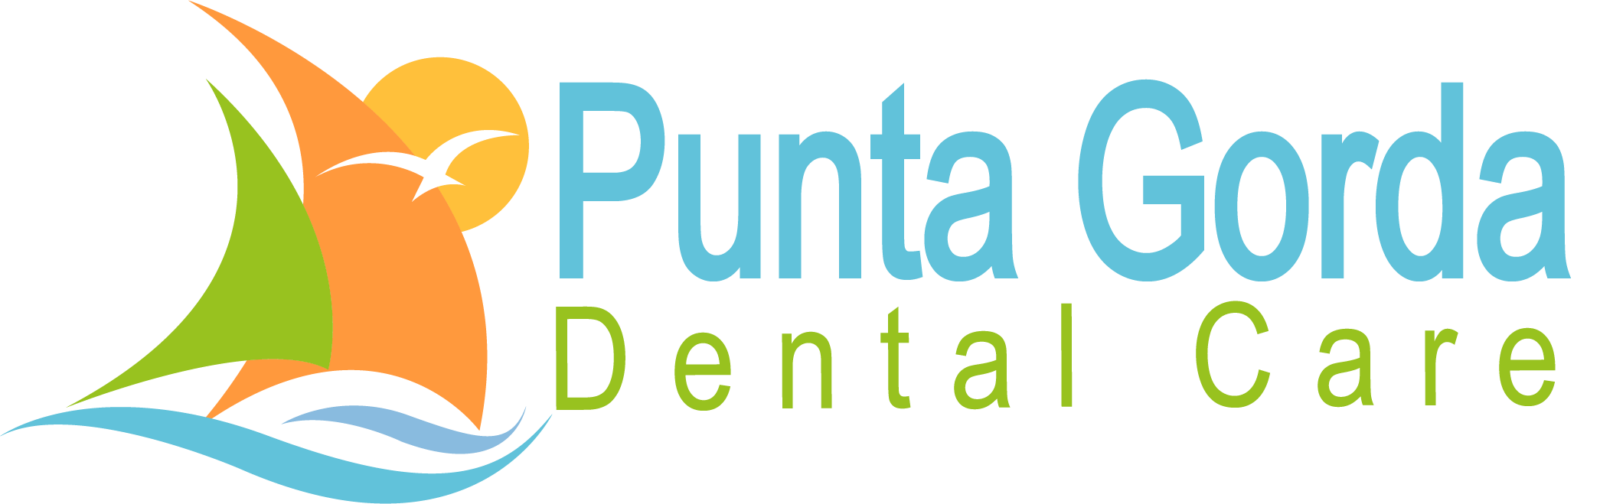 Punta Gorda Dental Care No Tagline transparent logo